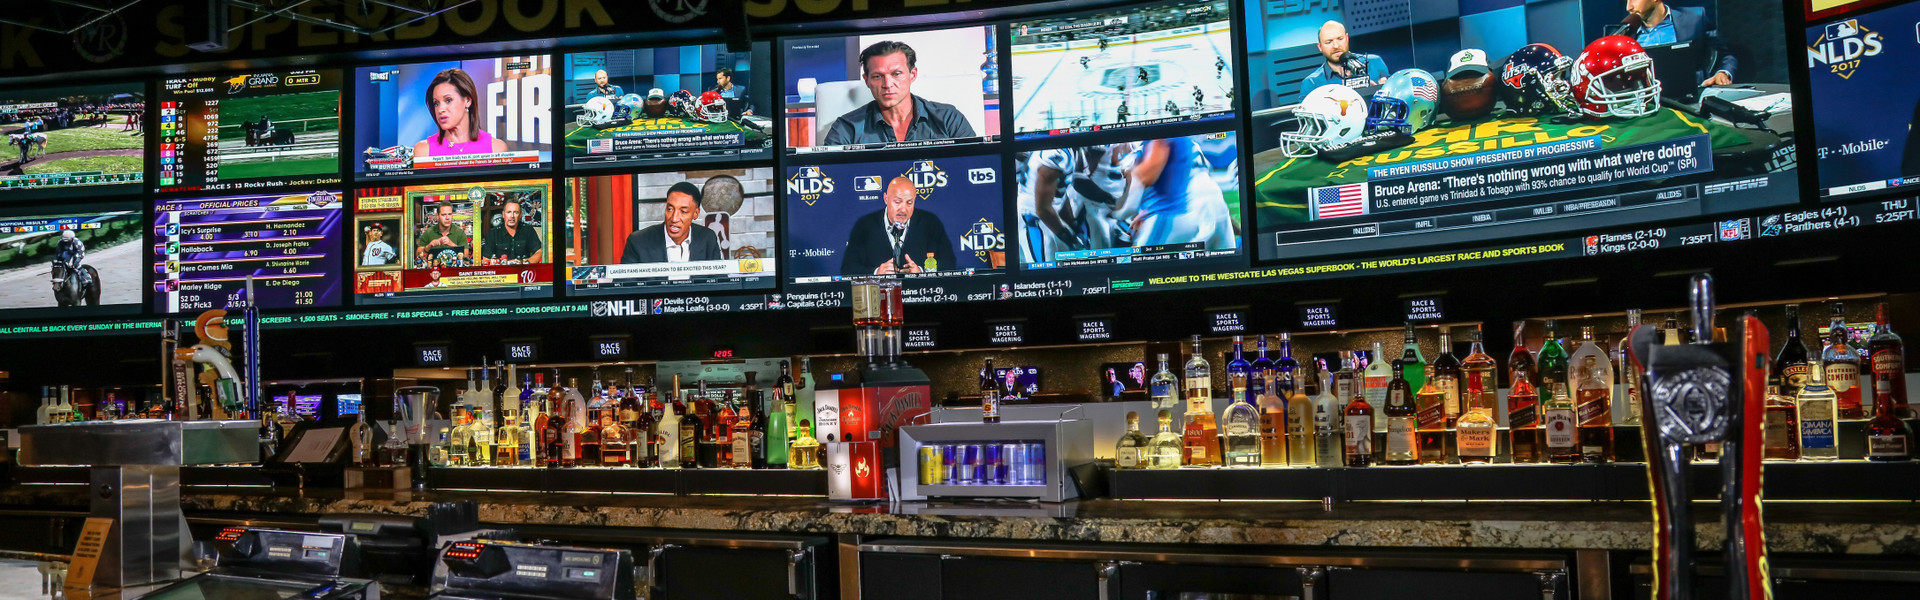 Baseball Season Wins Challenge | Superbook Bar